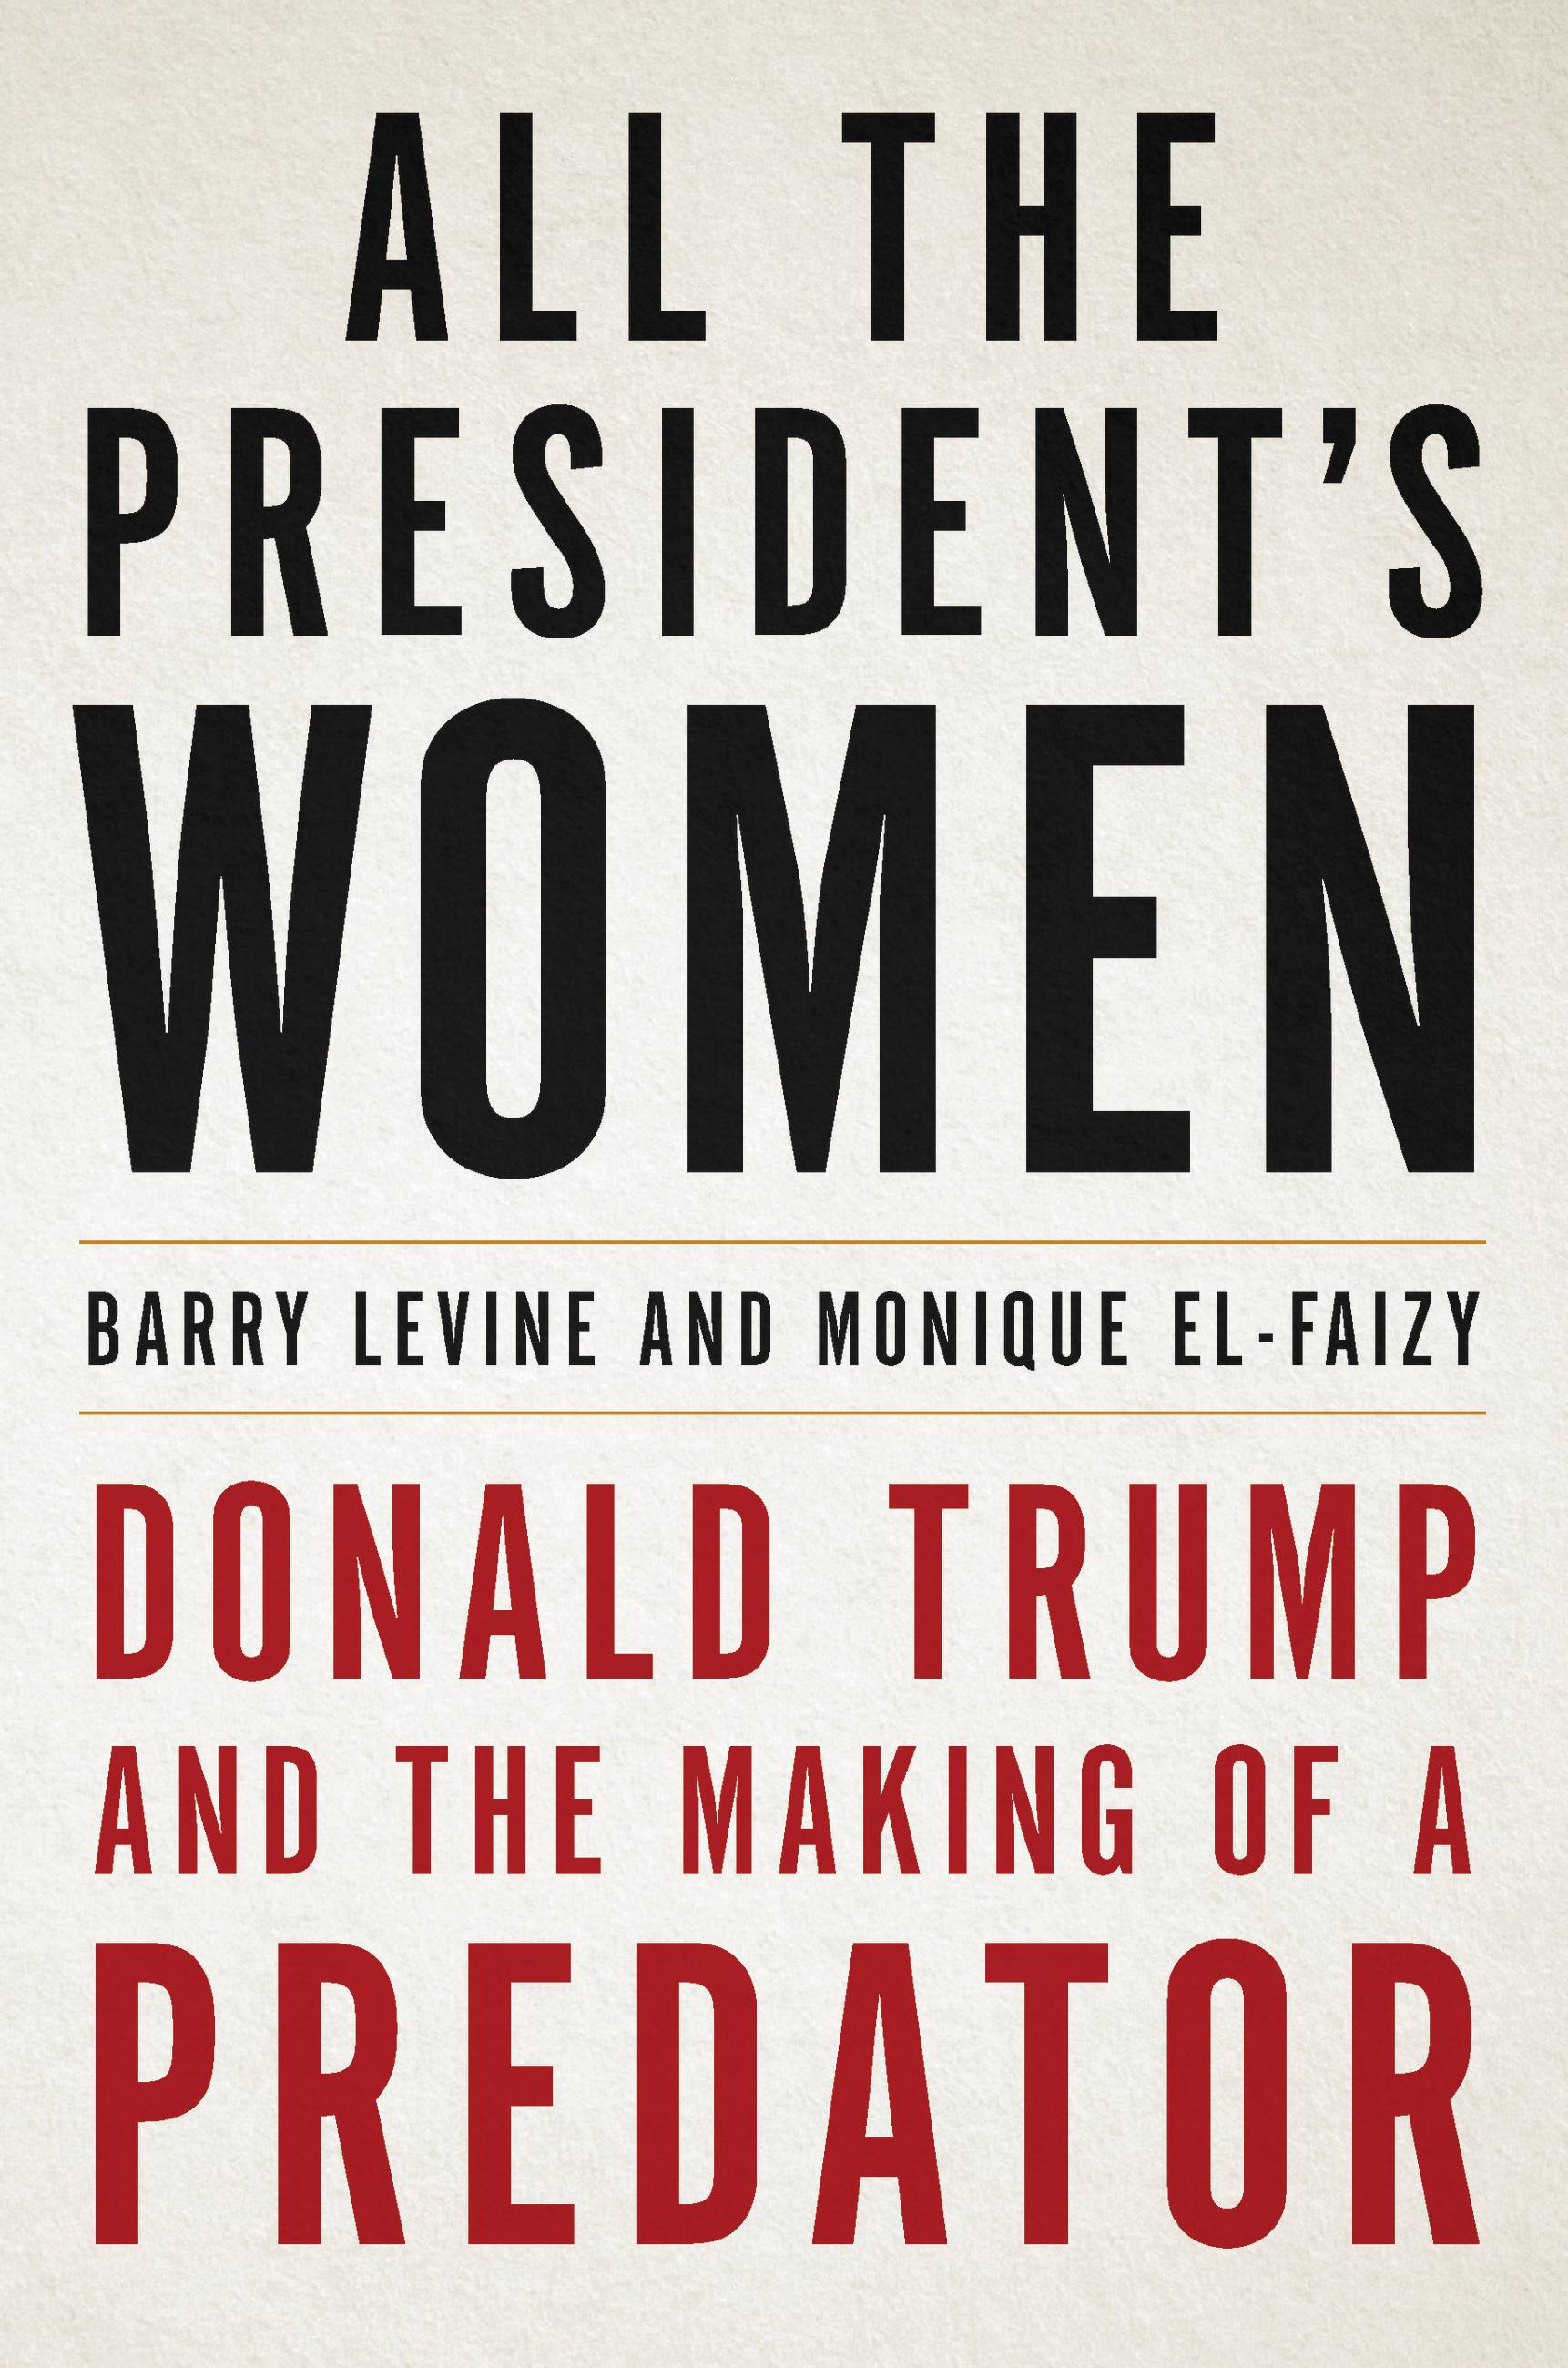 All the President's Women Donald Trump and the Making of a Predator